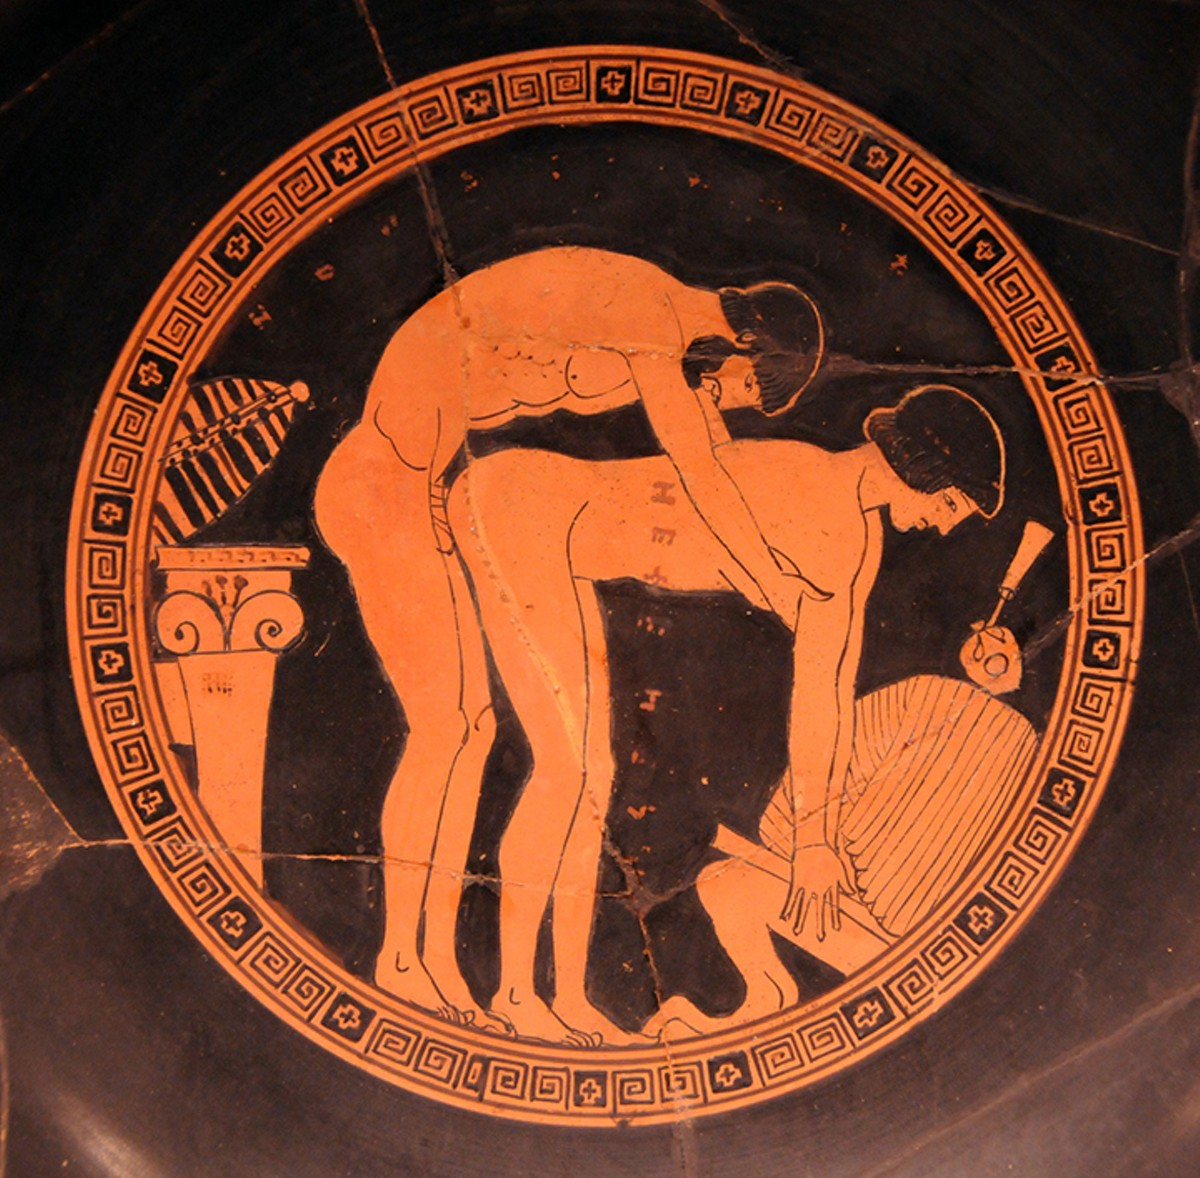 gal_erotic_poetry_night_-_ode_to_a_grecian_urn_about_fucking.jpg